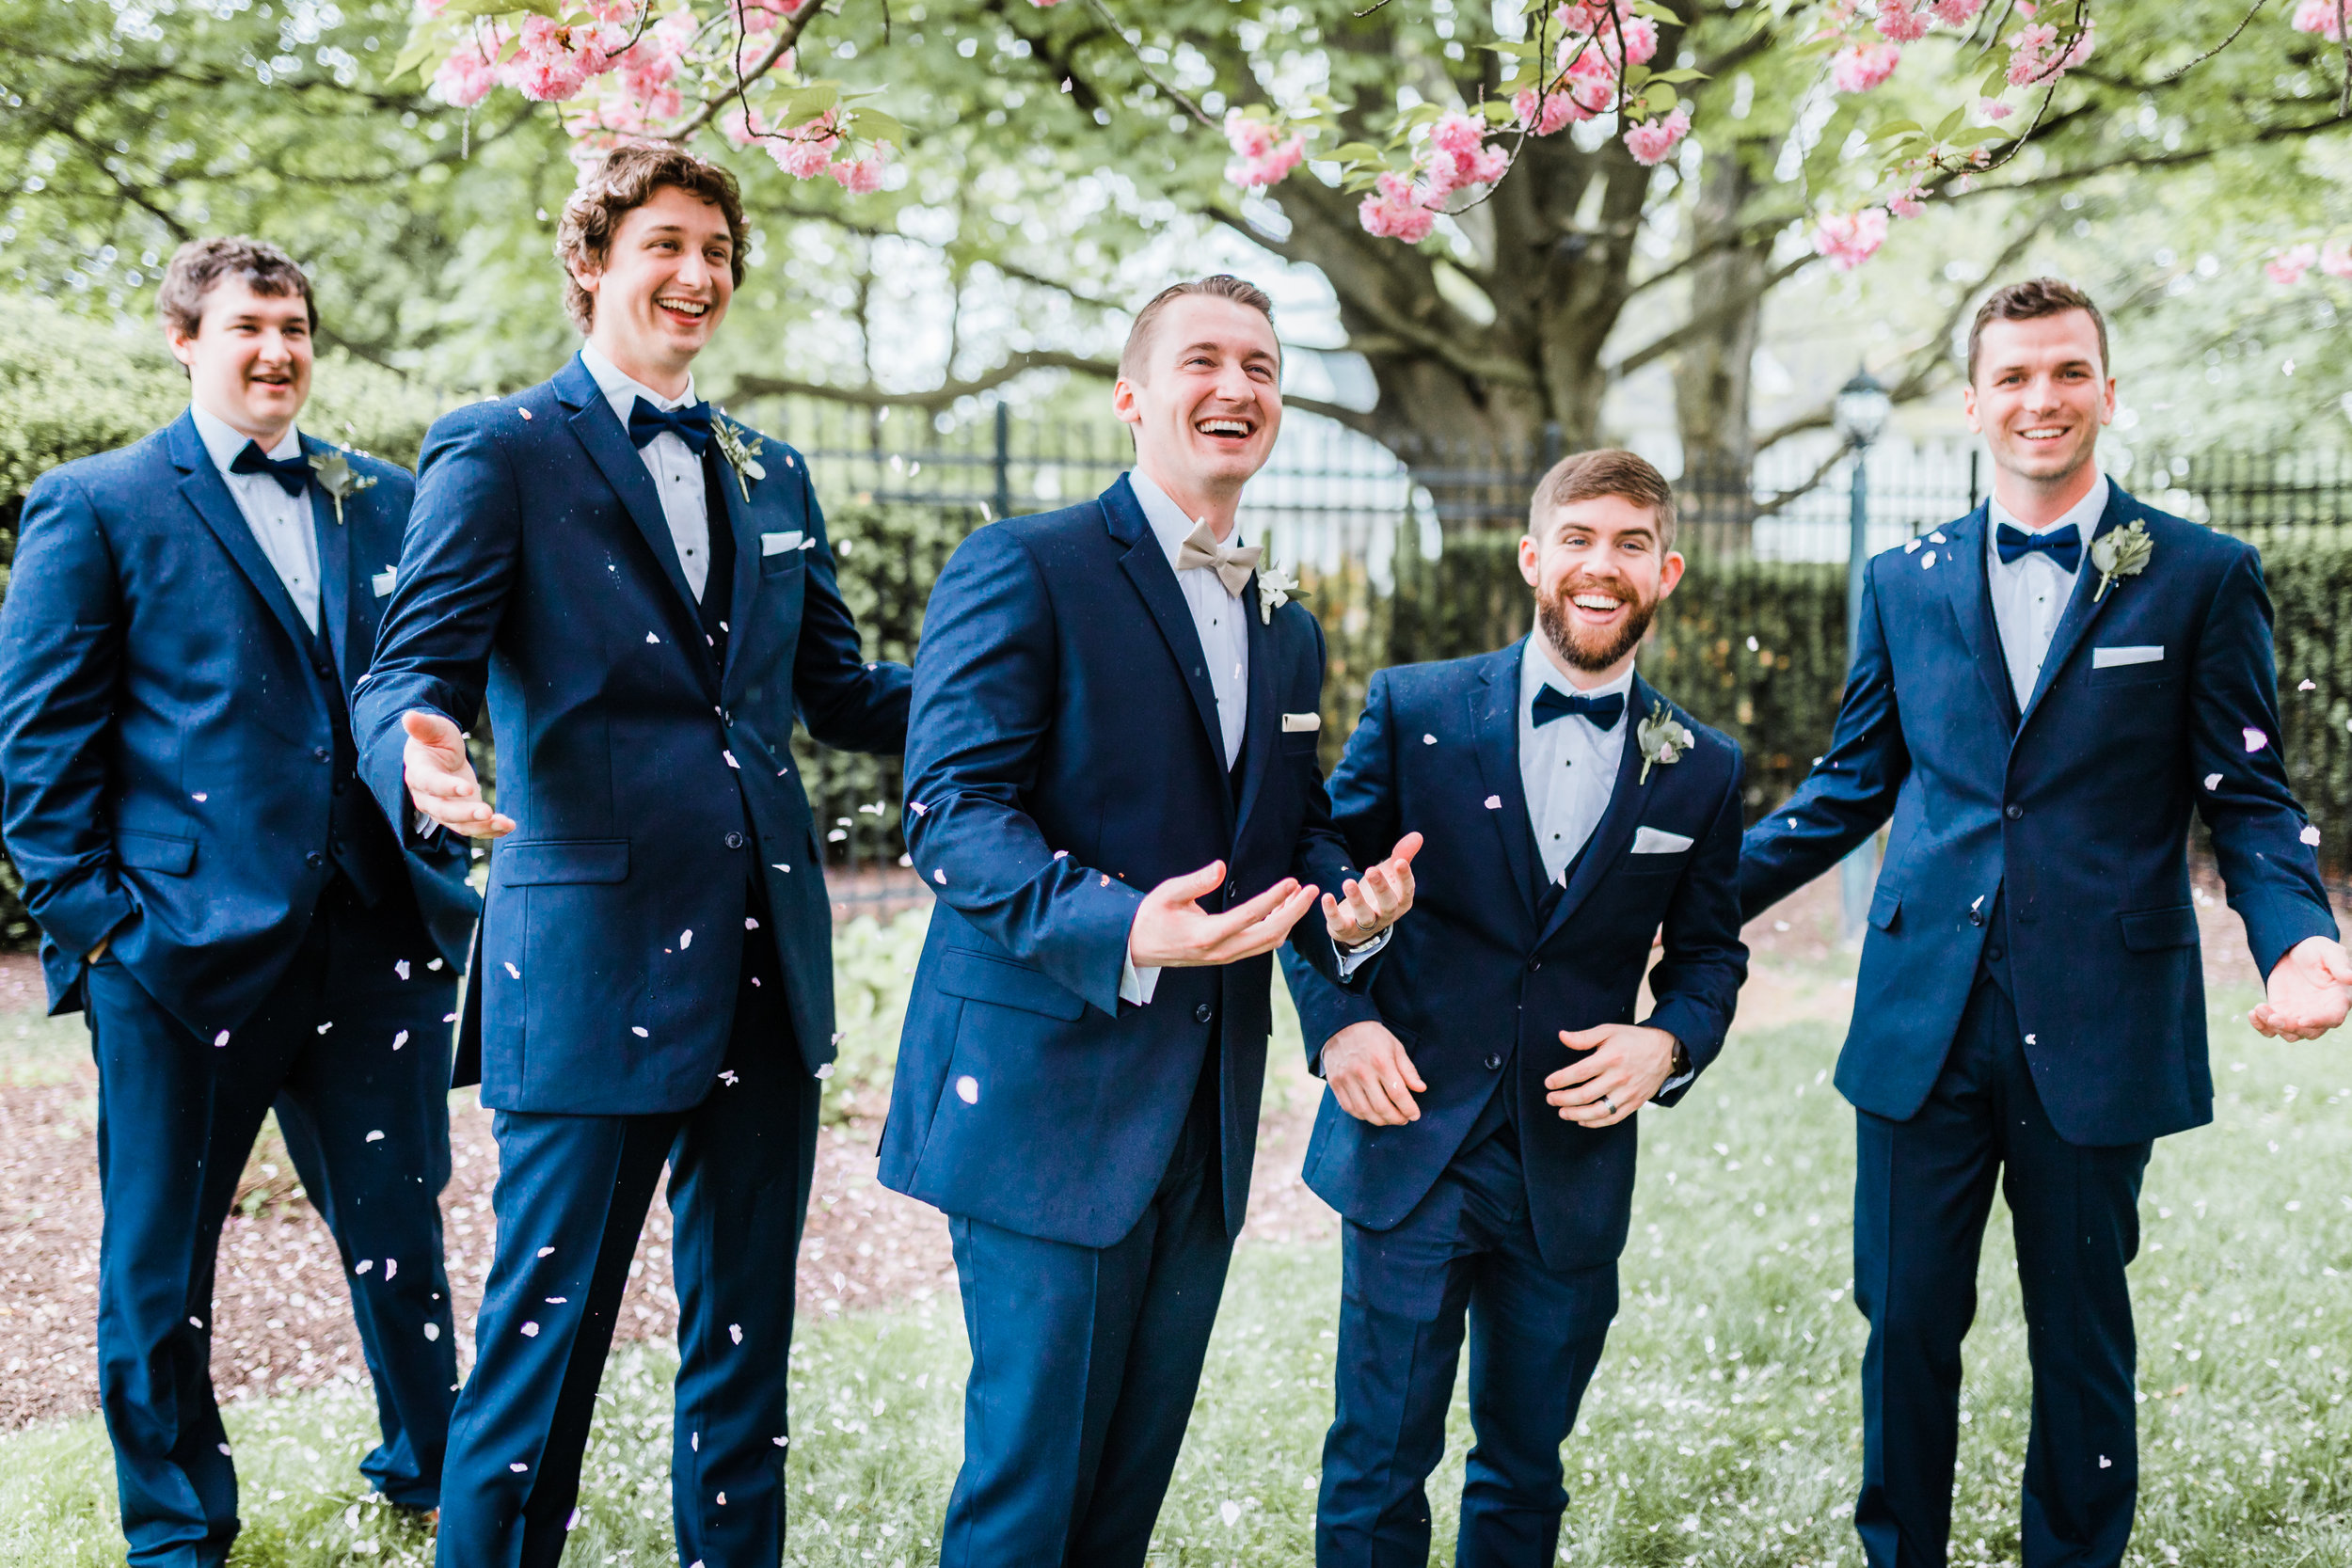 groom-with-groomsmen-laughing.jpg